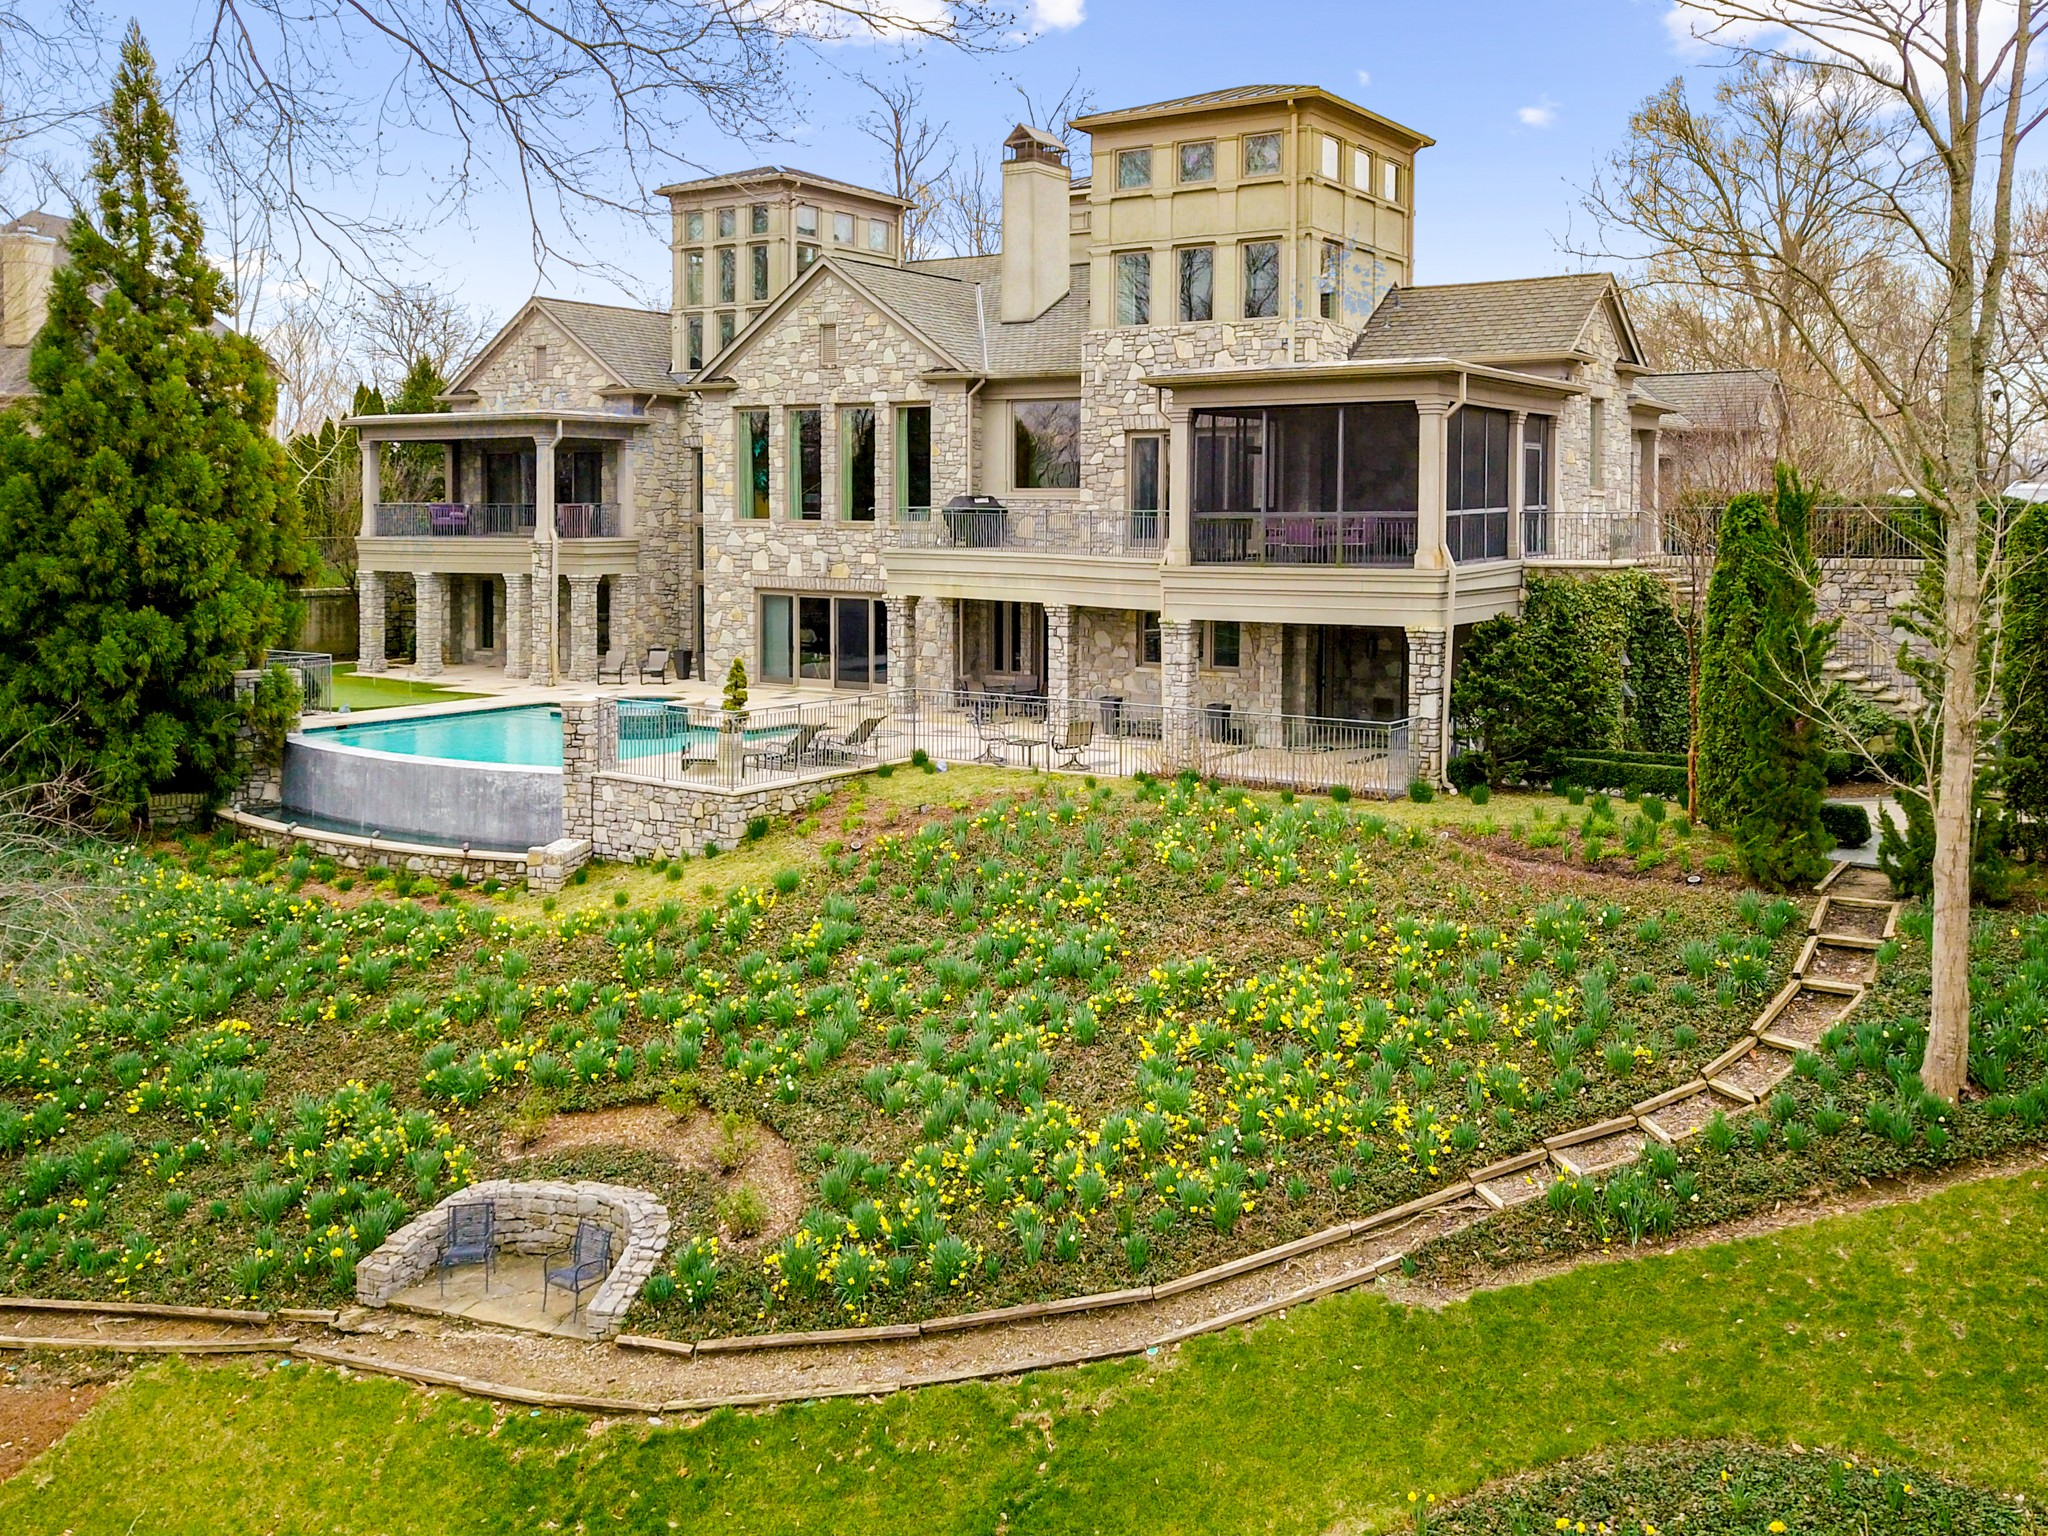 All expectations are exceeded in this exquisite custom residence designed by architect Scott Wilson * It's interior unfolds room after room of luxurious appointments * Custom features exist throughout including captivating fiber optic shelving in the dining room; Sapele wood cabinetry in the kitchen; and Venetian plaster wall & ceiling accents * Wonderful outdoor living areas include an infinity edge pool, screen porch, and balcony and terrace areas for entertaining and family enjoyment *